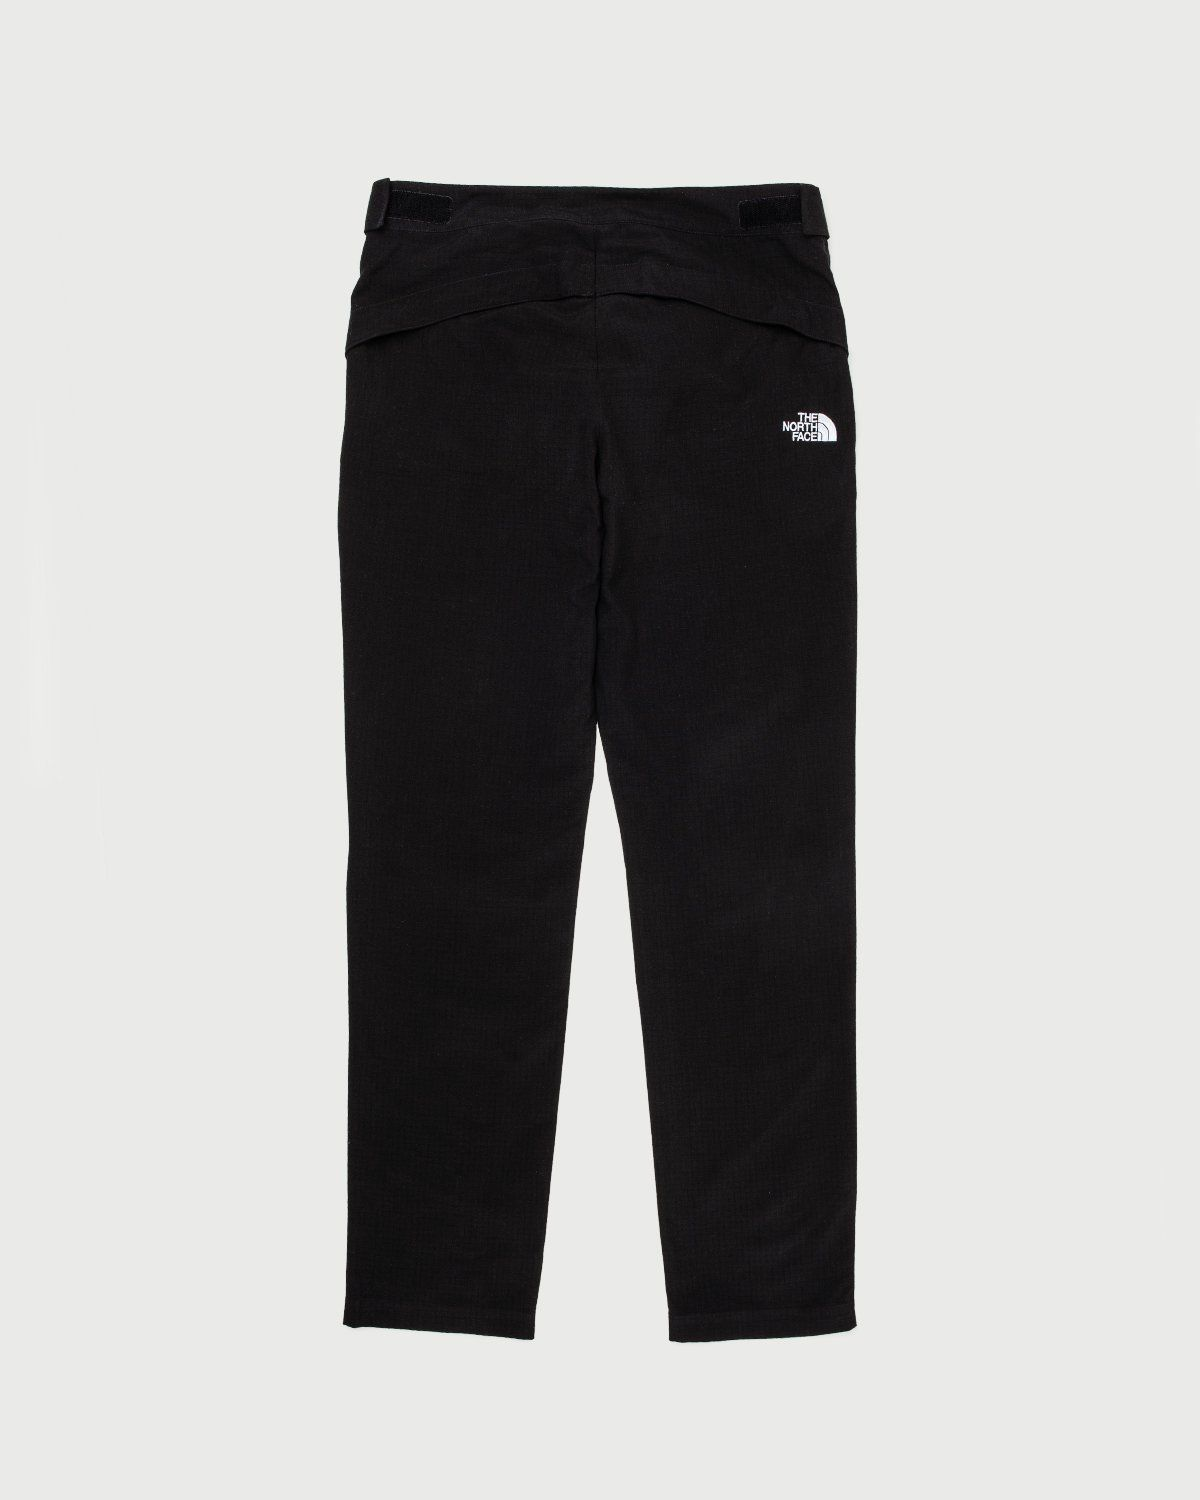 The North Face Black Series - Ripstop Trousers Black - Image 5